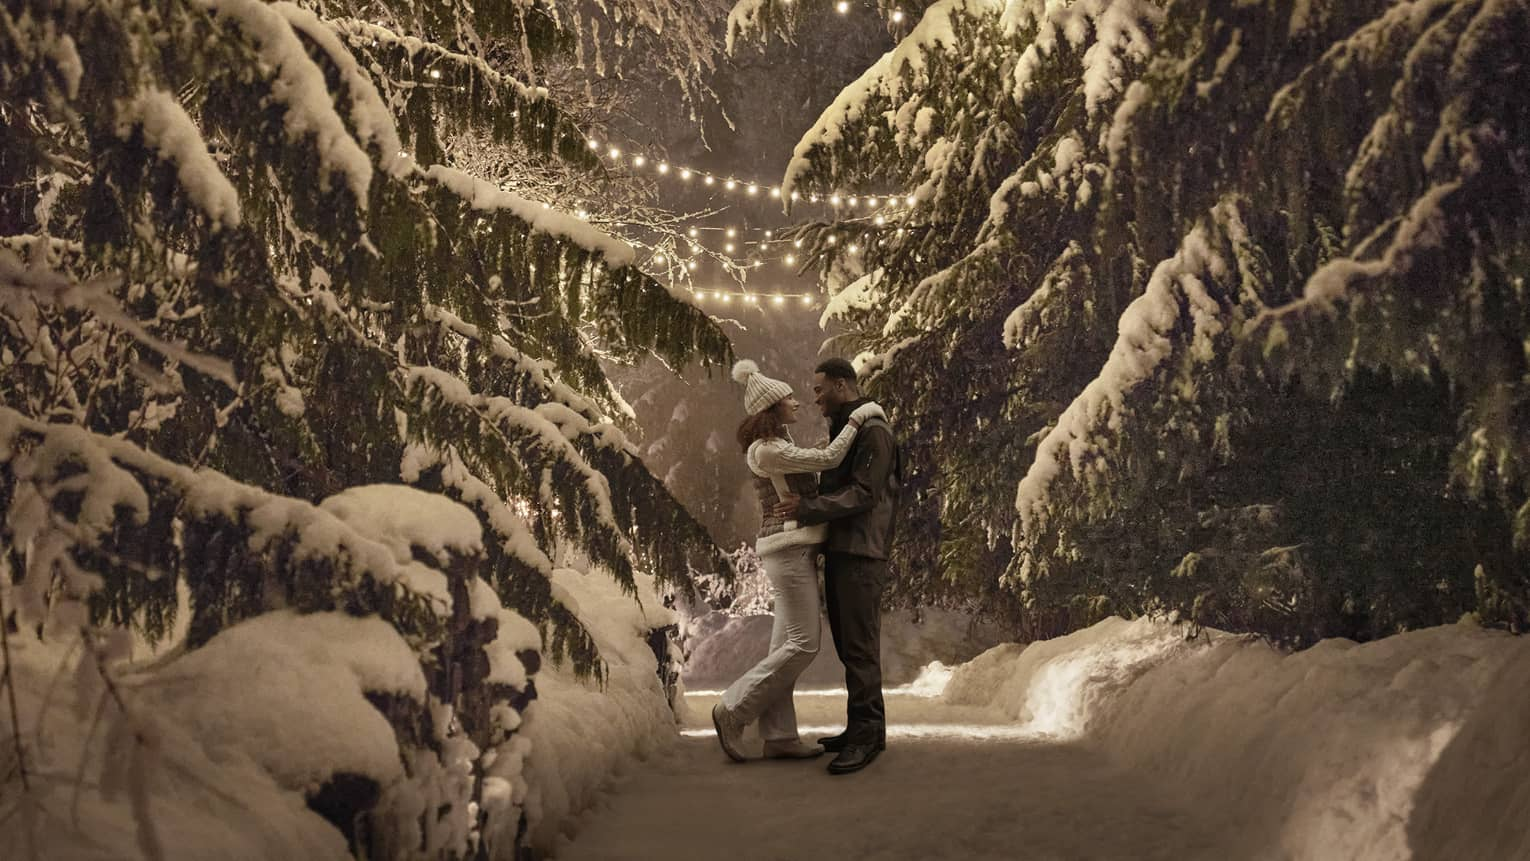 Couple wearing winter coats embrace on snow covered path between large trees at night